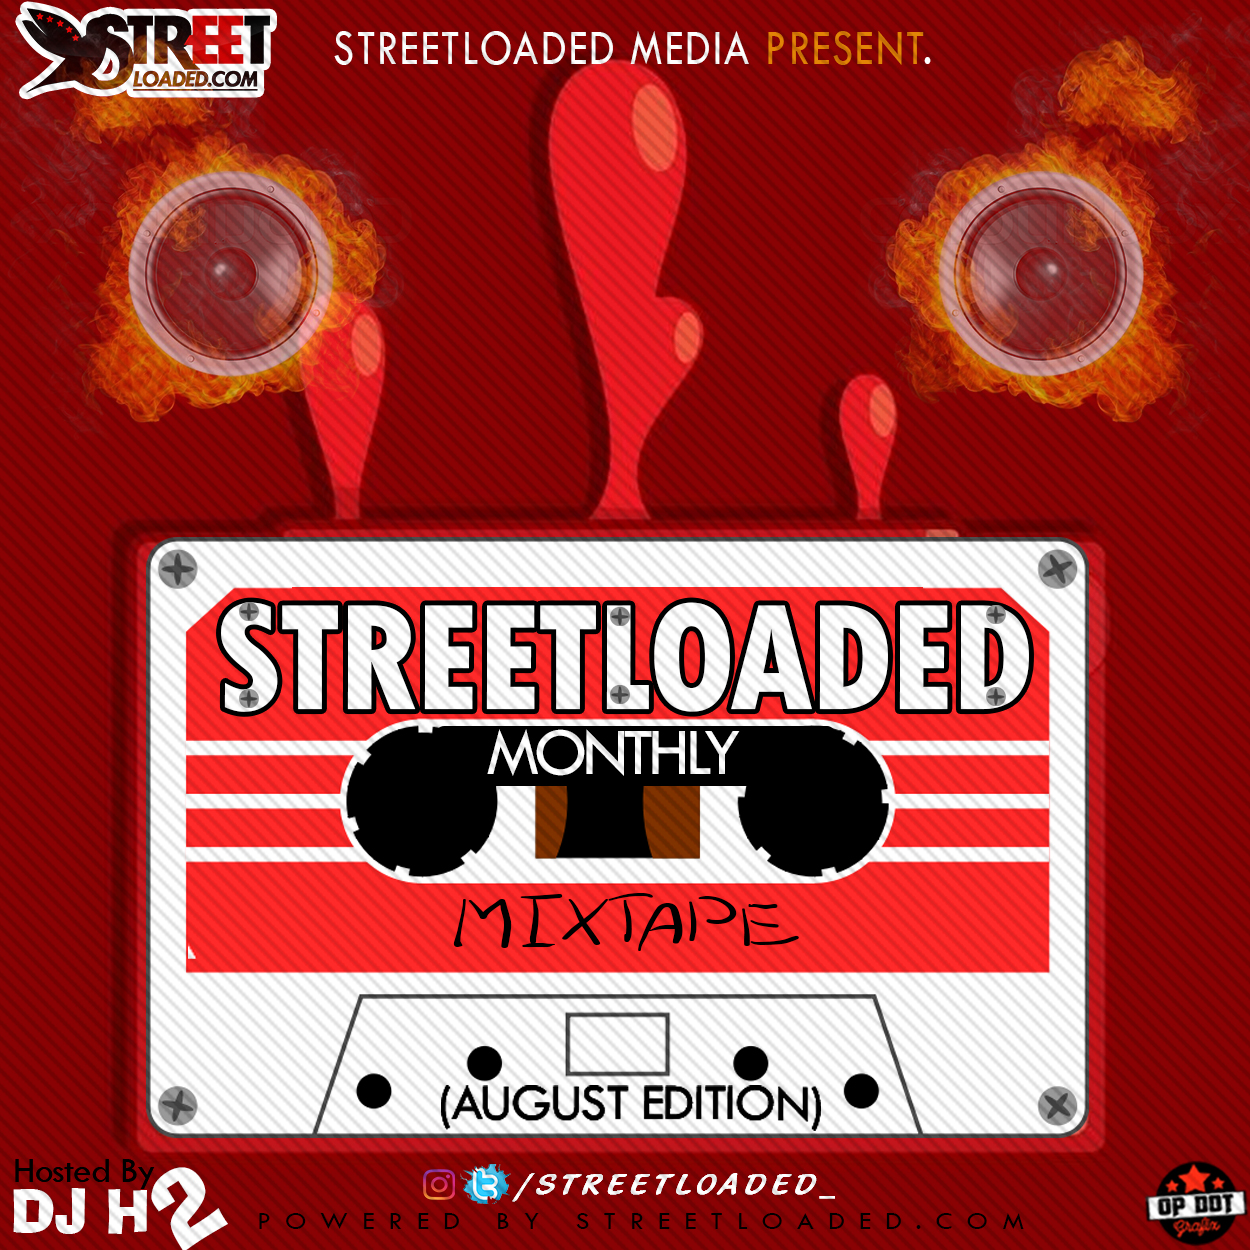 Mixtape: Deejay H2 - Streetloaded Monthly Mix (August Edition